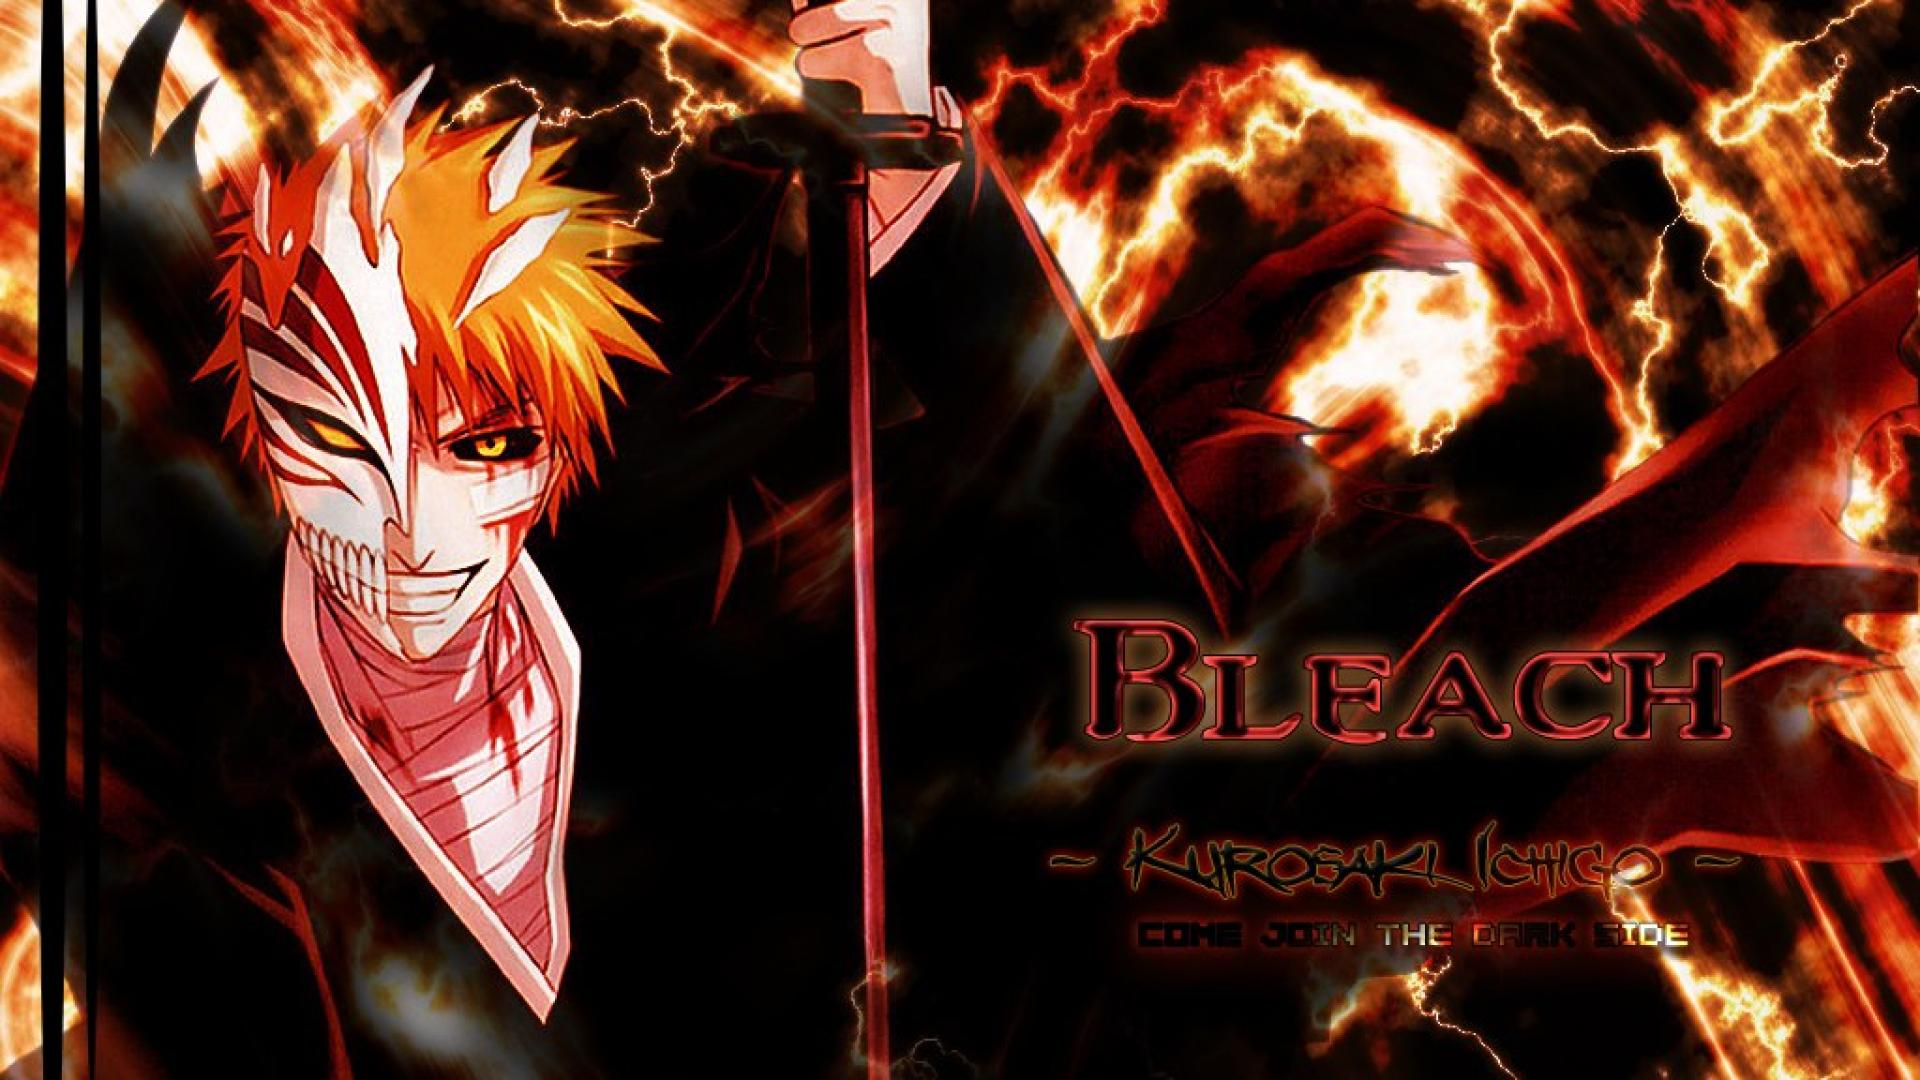 Bleach 4k Wallpaper Posted By Ethan Sellers